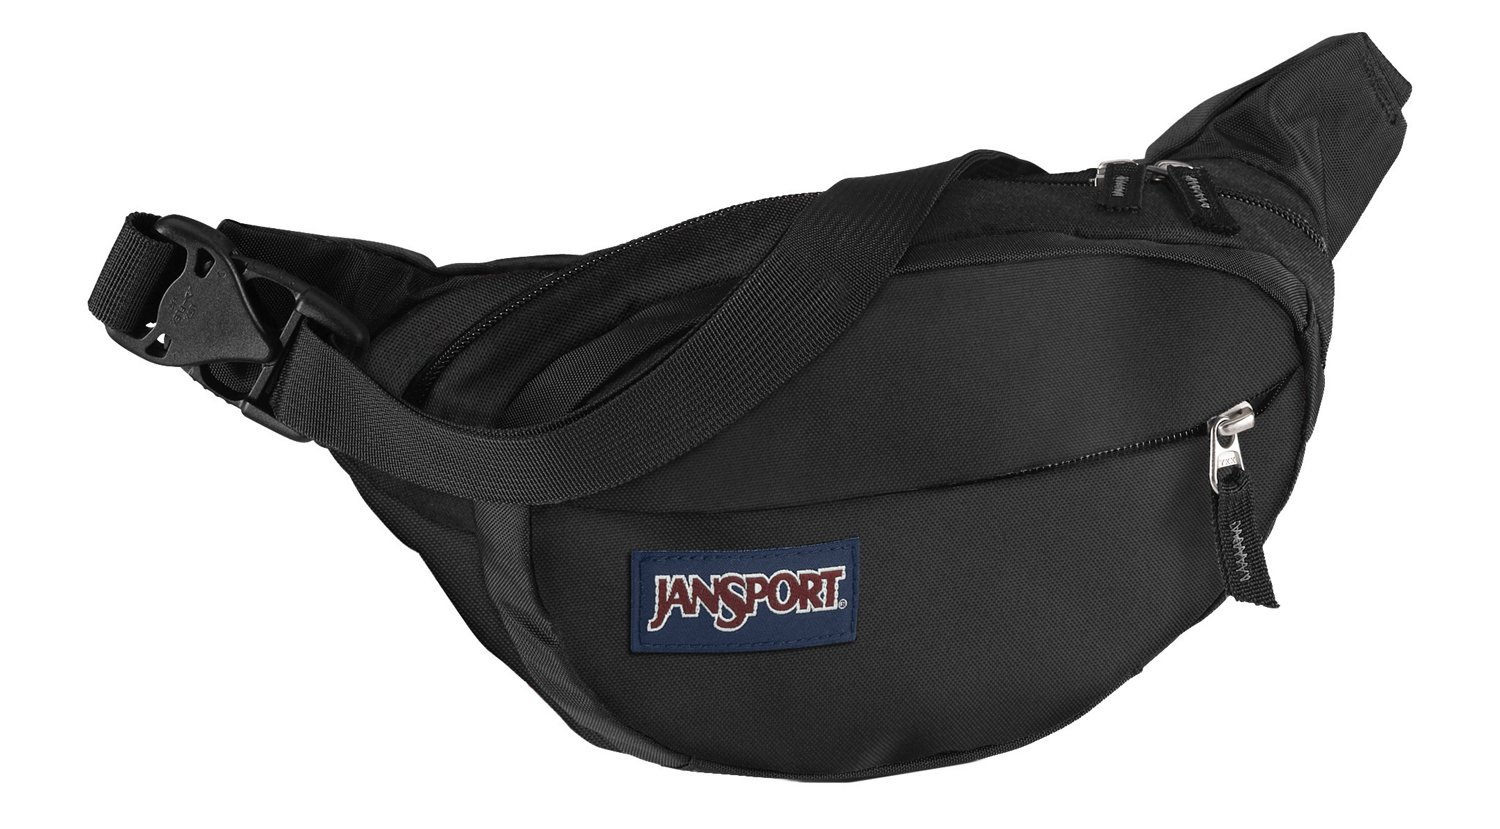 Hip Bag Black Woven Knit JanSport Fifth Ave FX Fanny Pack